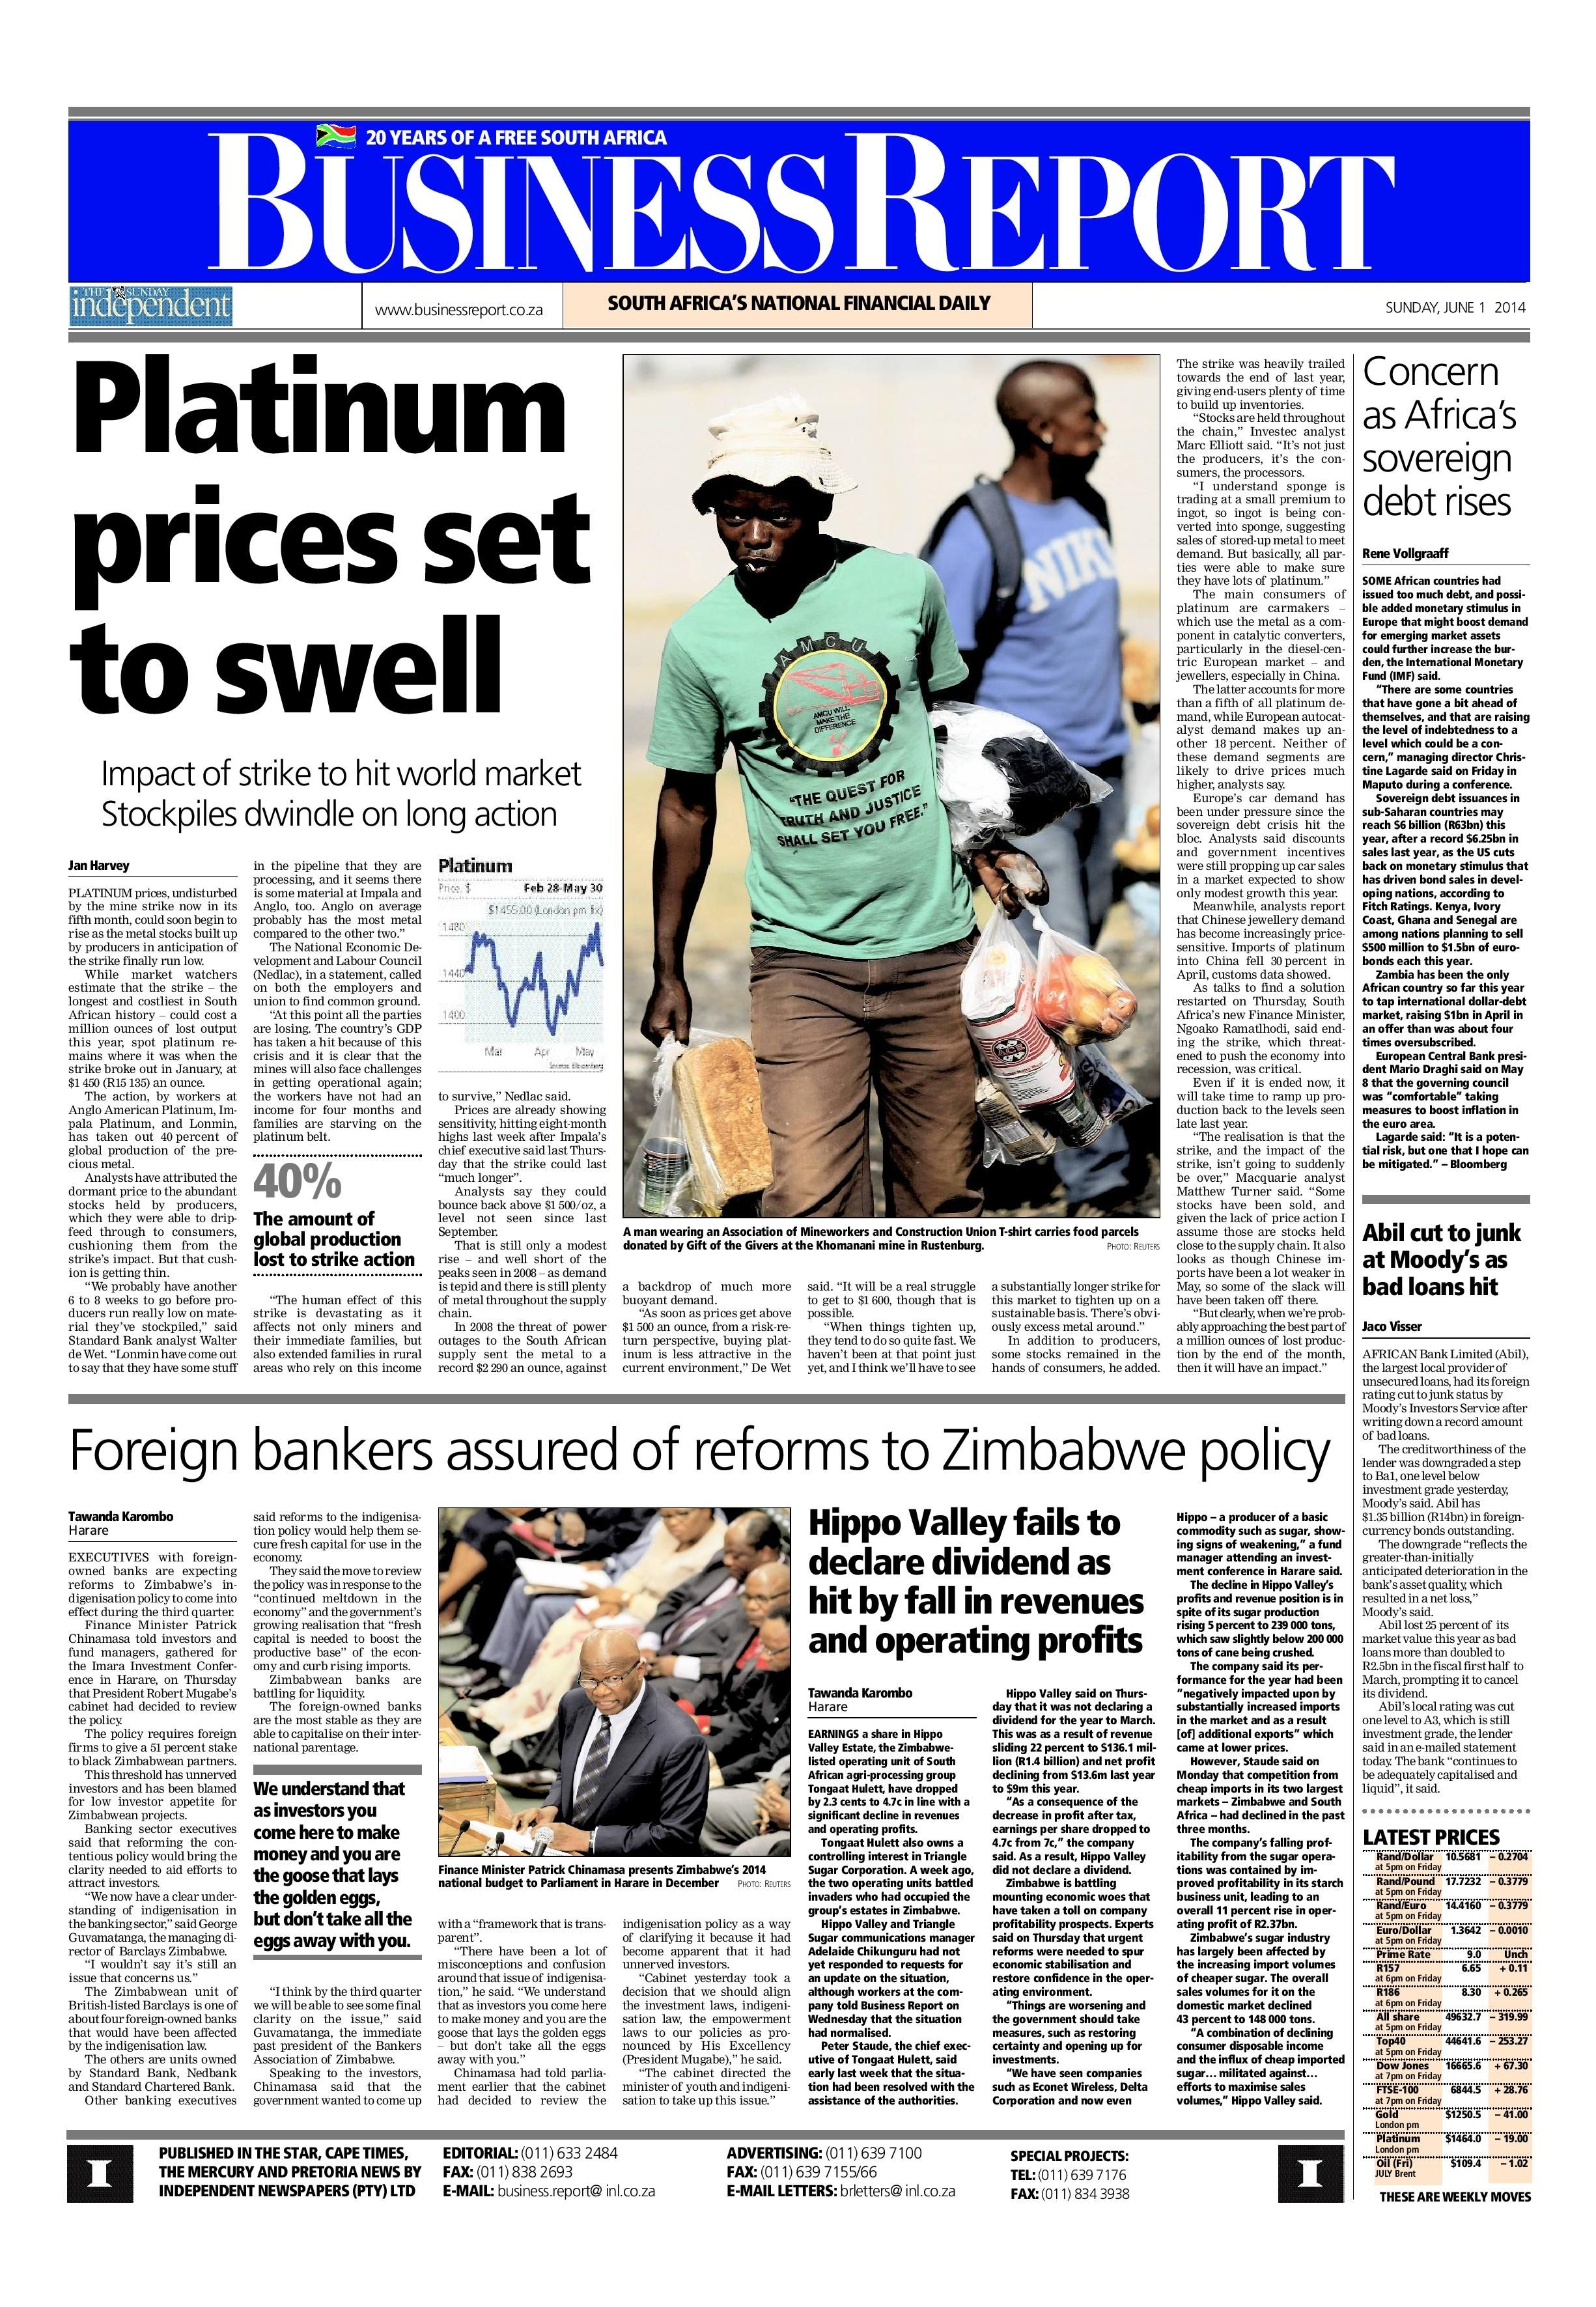 The front page of today's (June 1, 2014) Business Report paper deals with the platinum strike, Africa's debt, African Bank and Zimbabwe.  To read these stories and more click here: http://www.iol.co.za/business